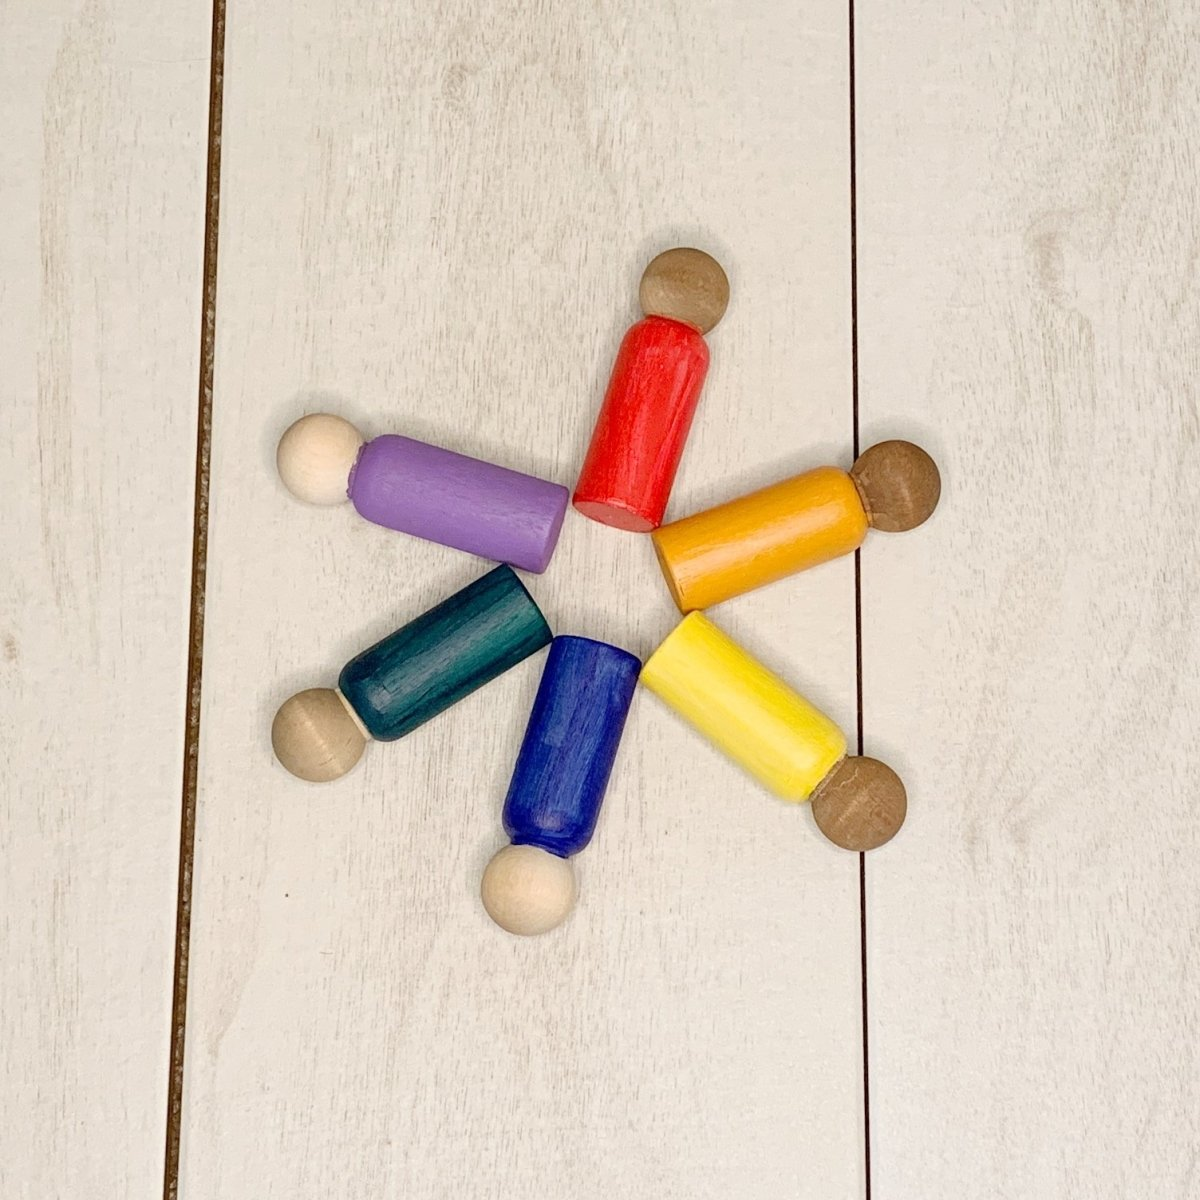 Rainbow Set of Peg Dolls - 3.5 inches - Imaginations Unbound